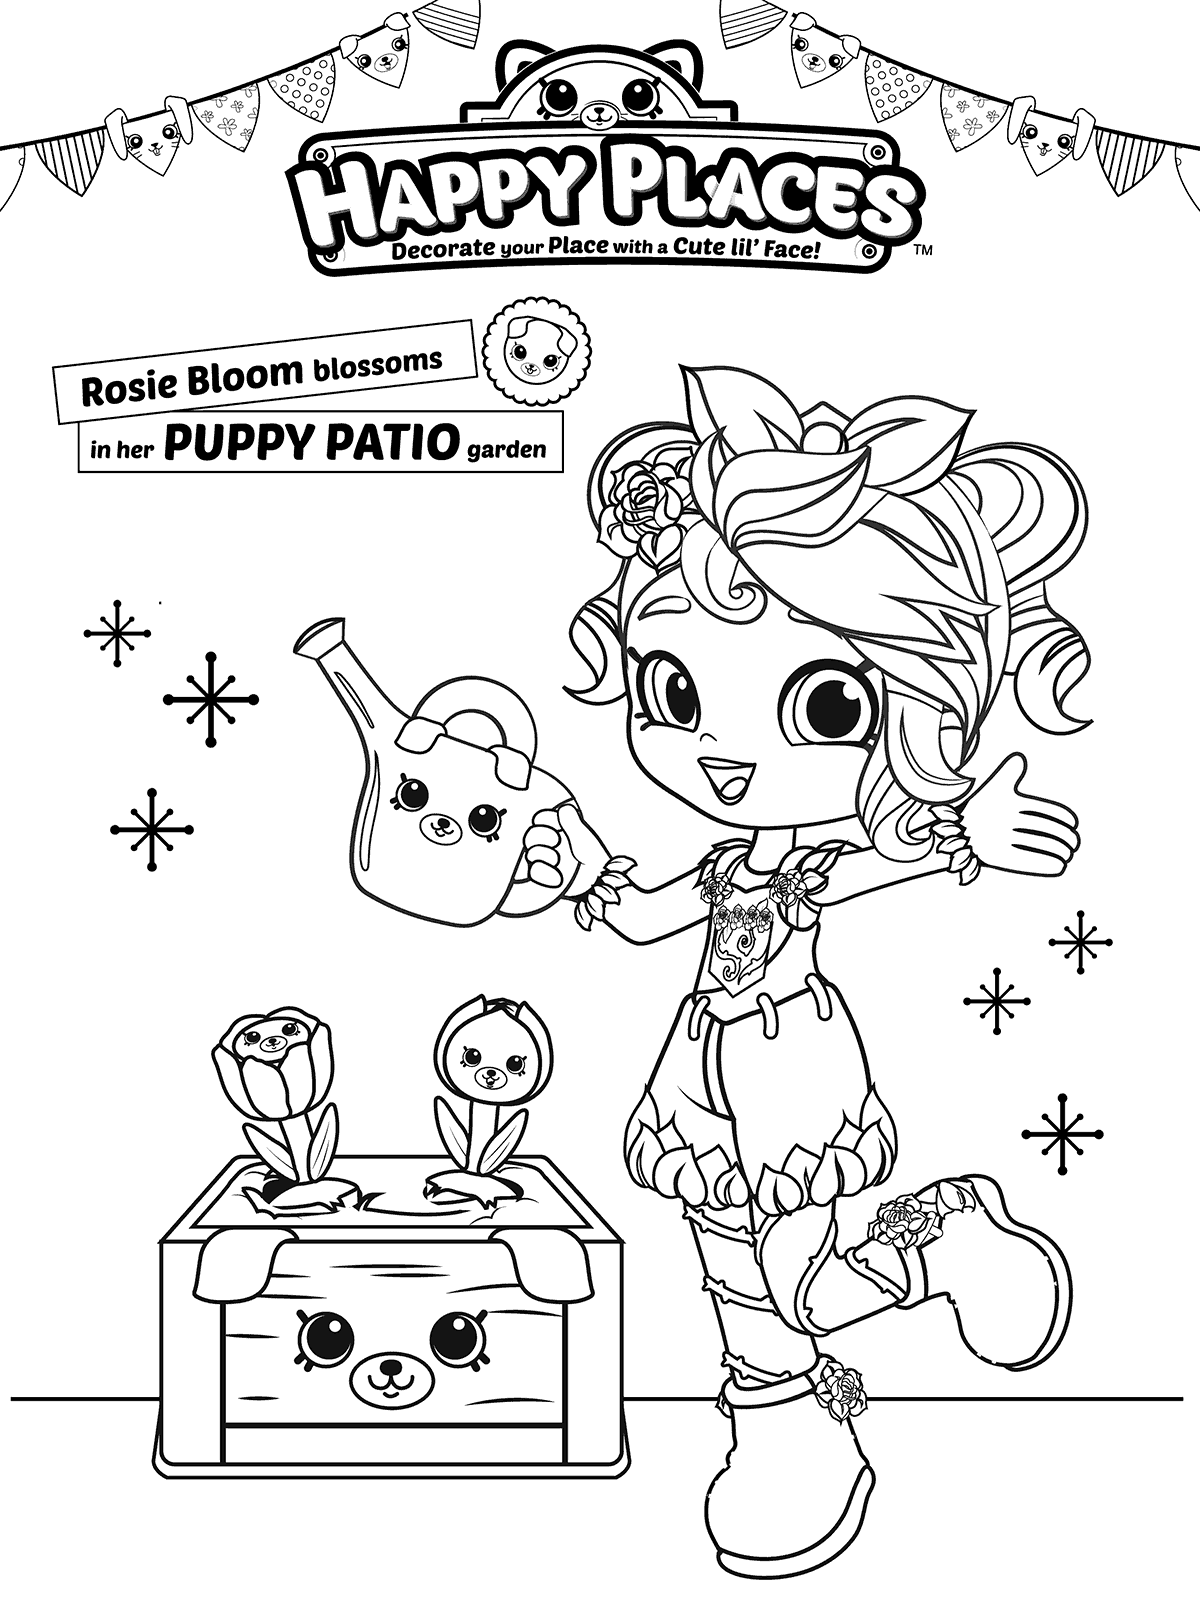 Happy Places Shopkins Happy Places coloring pages